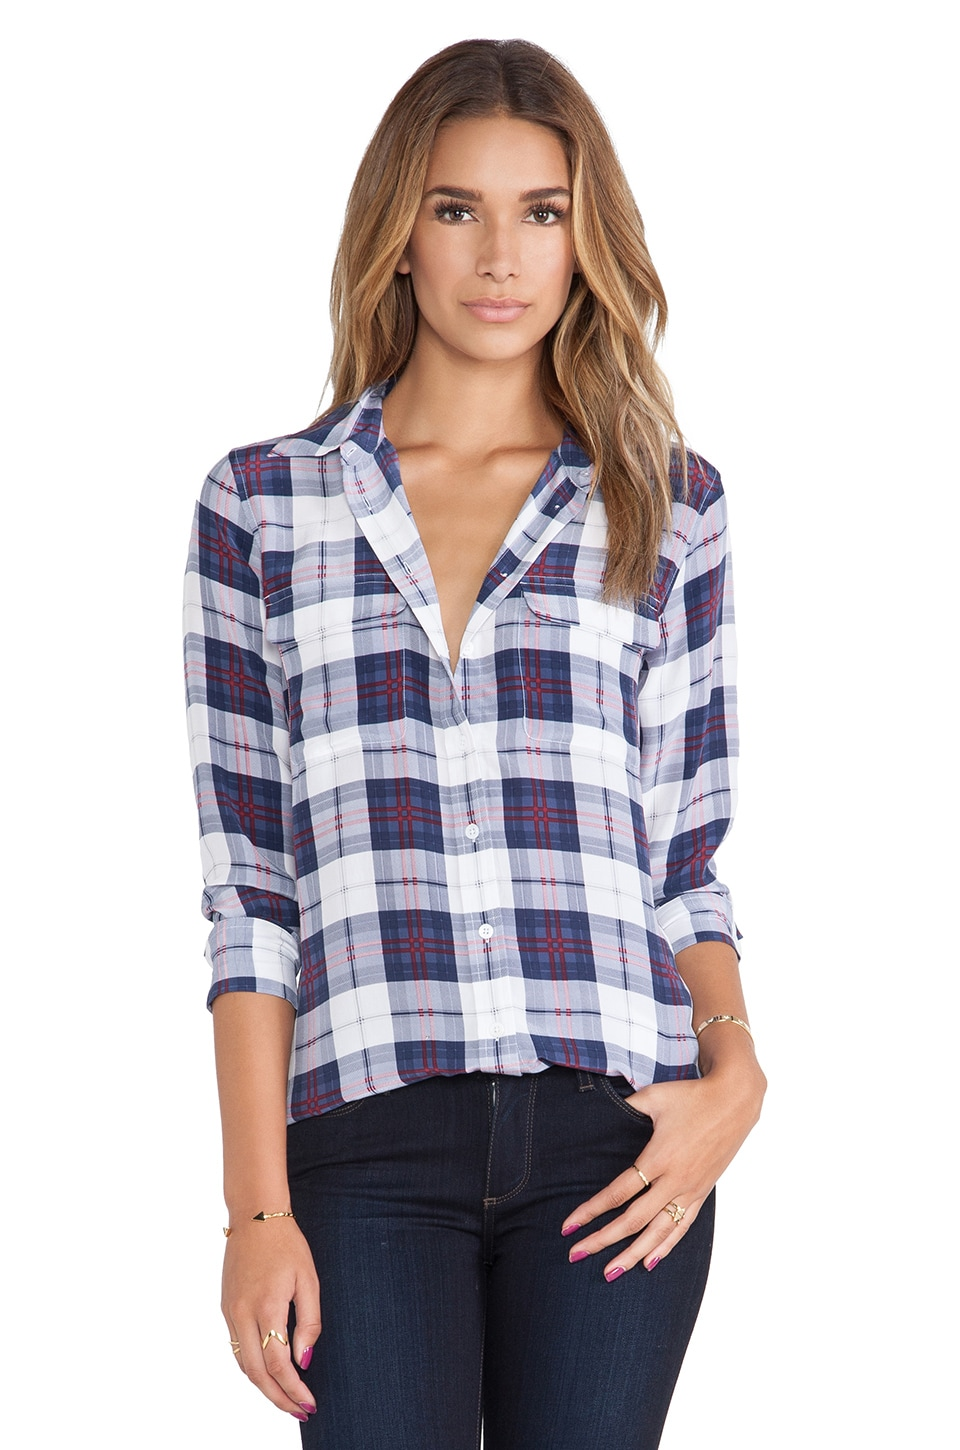 Equipment Slim Signature Audacious Plaid Printed Blouse in Luxe Multi